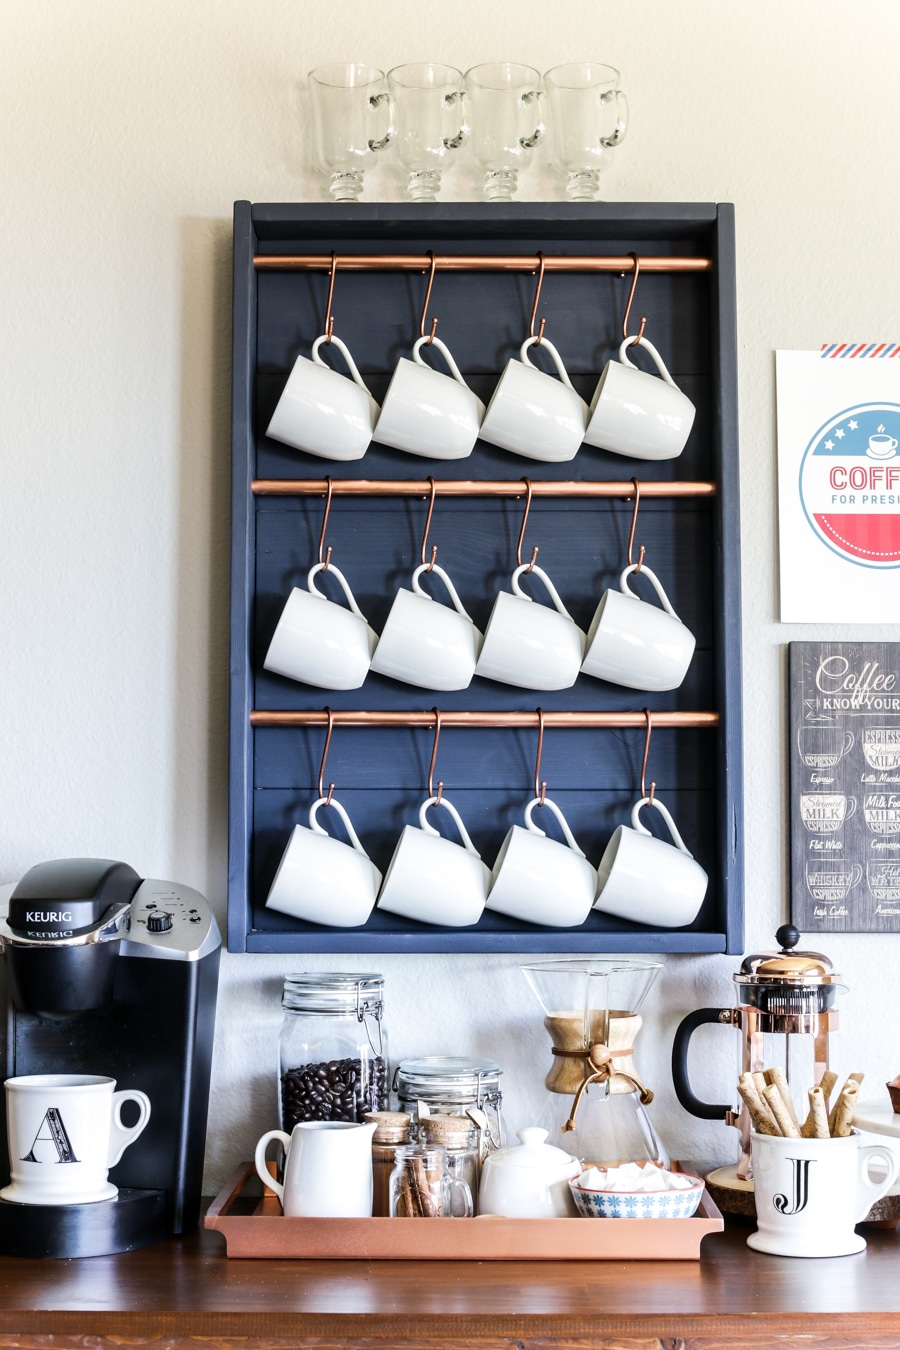 hgtv-coffee-bar